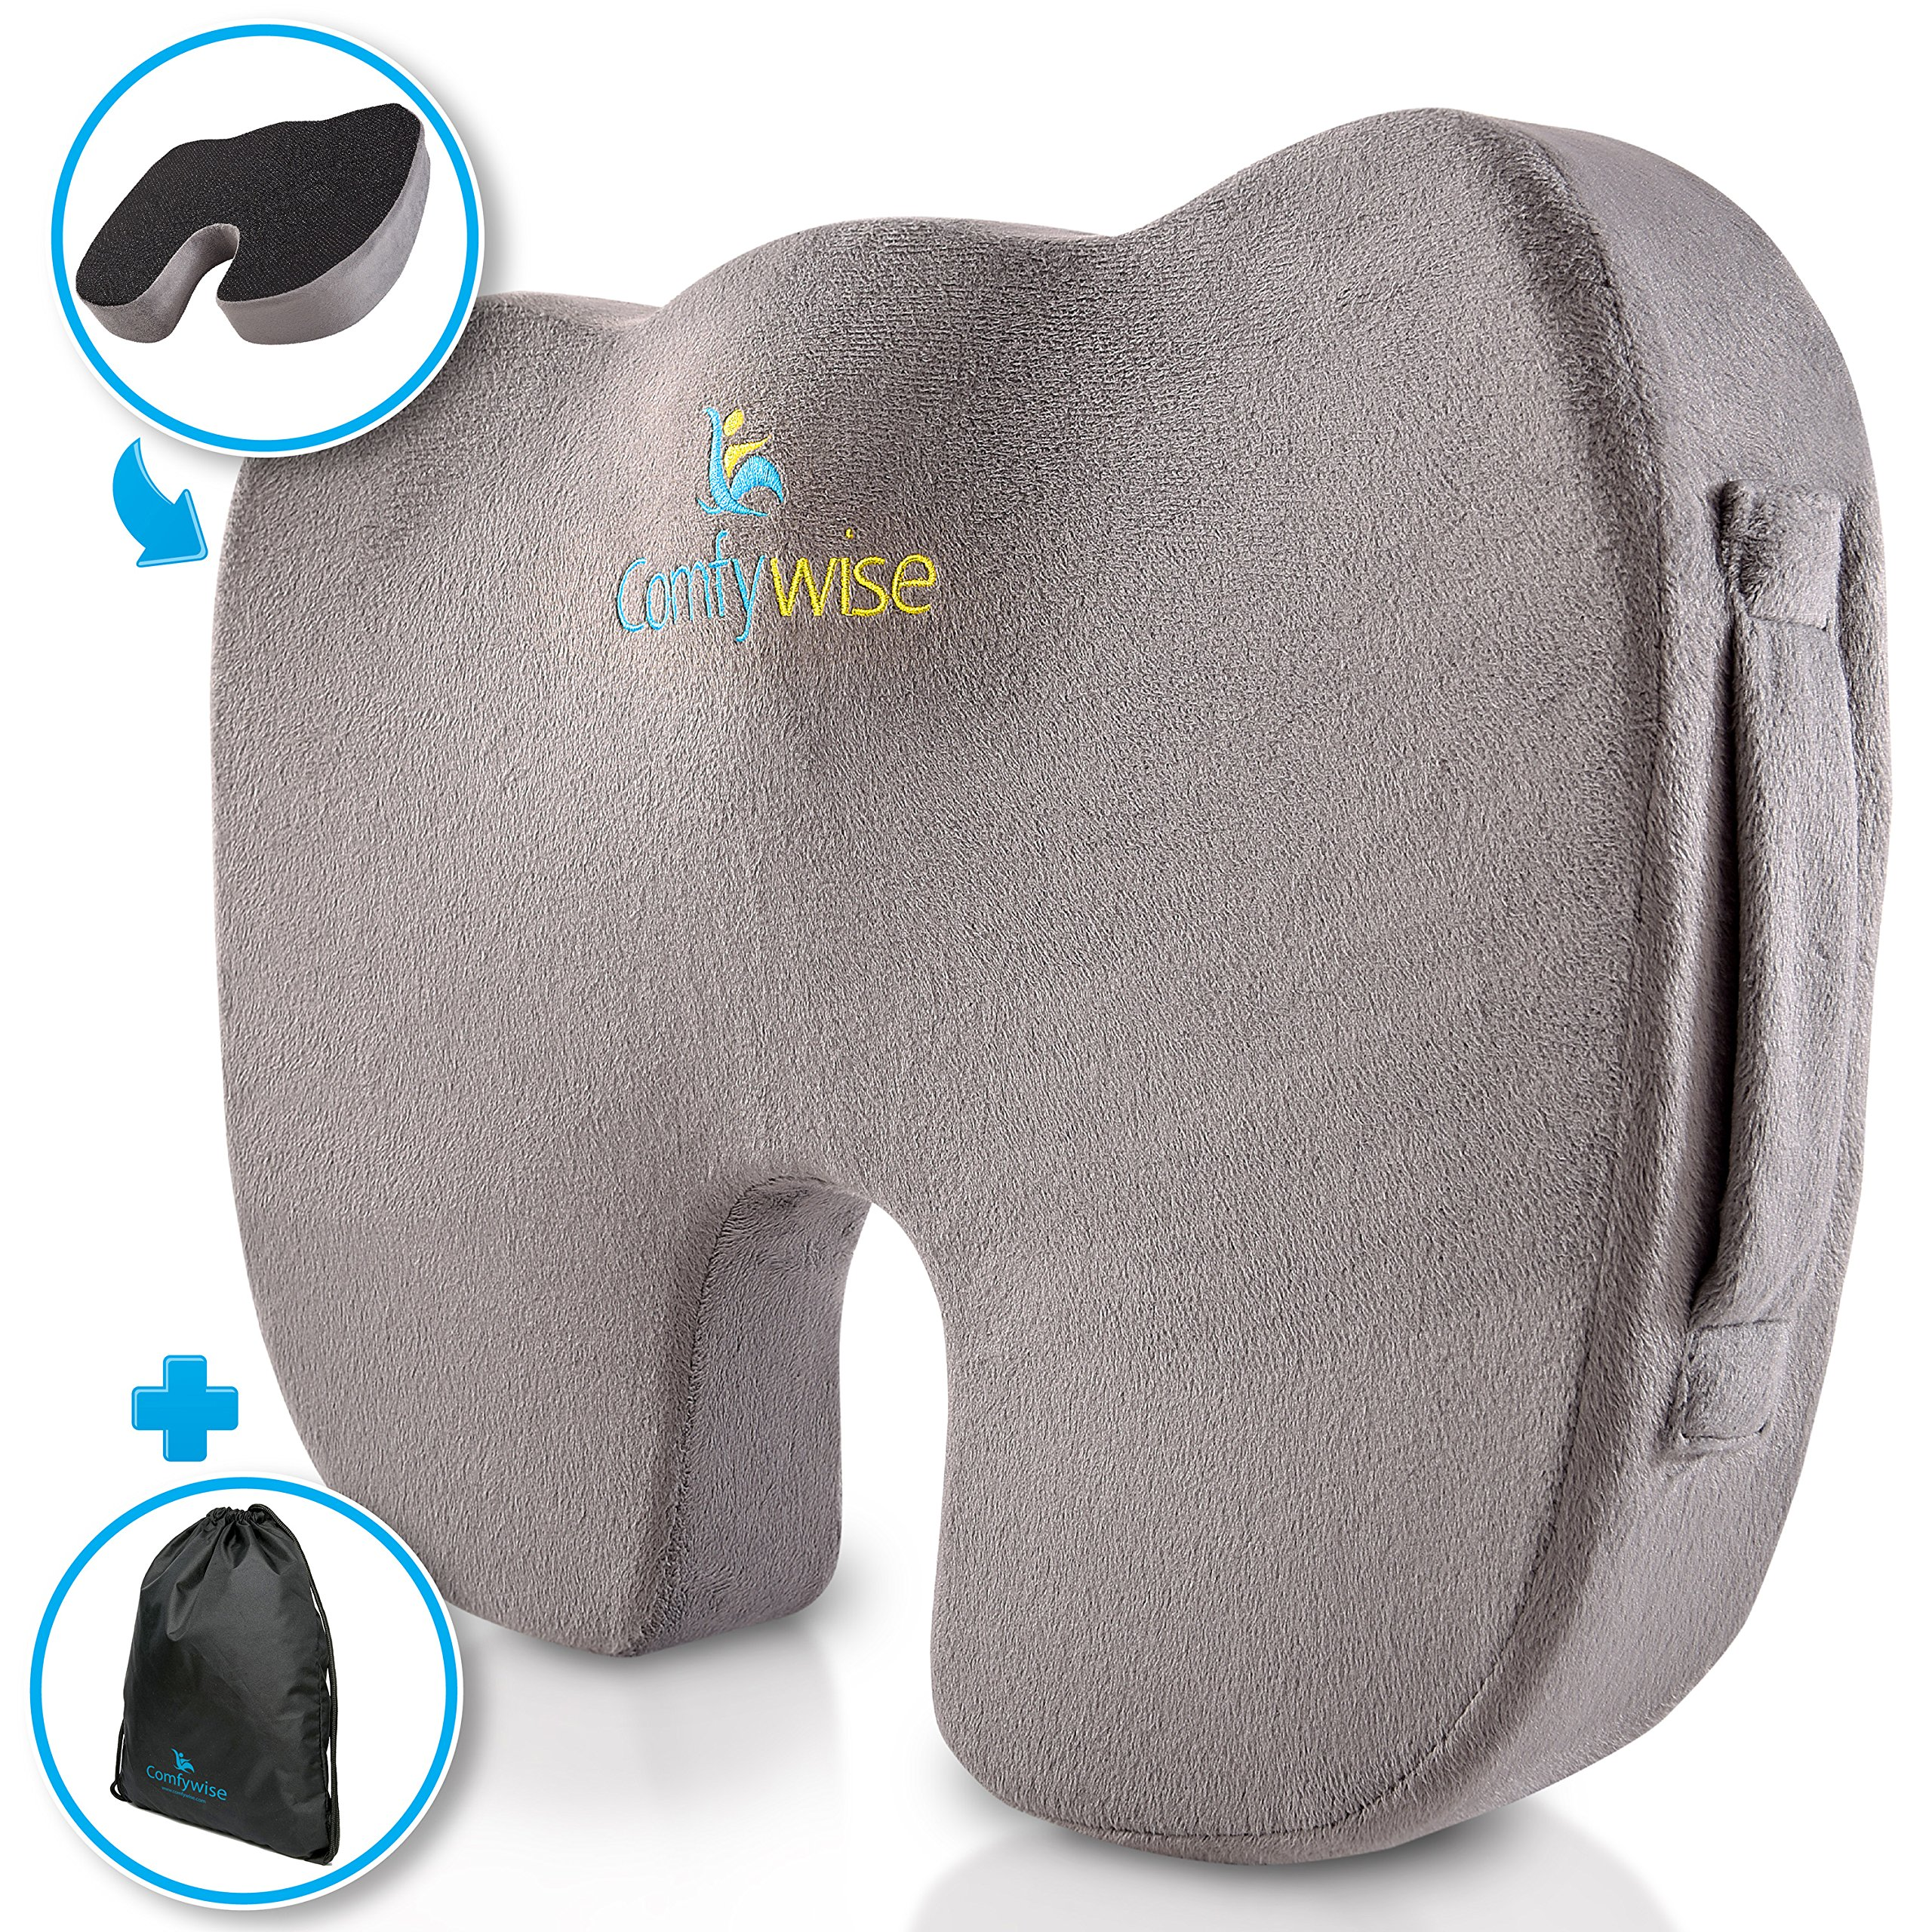 Comfywise Coccyx Orthopedic Memory Foam Seat Cushion